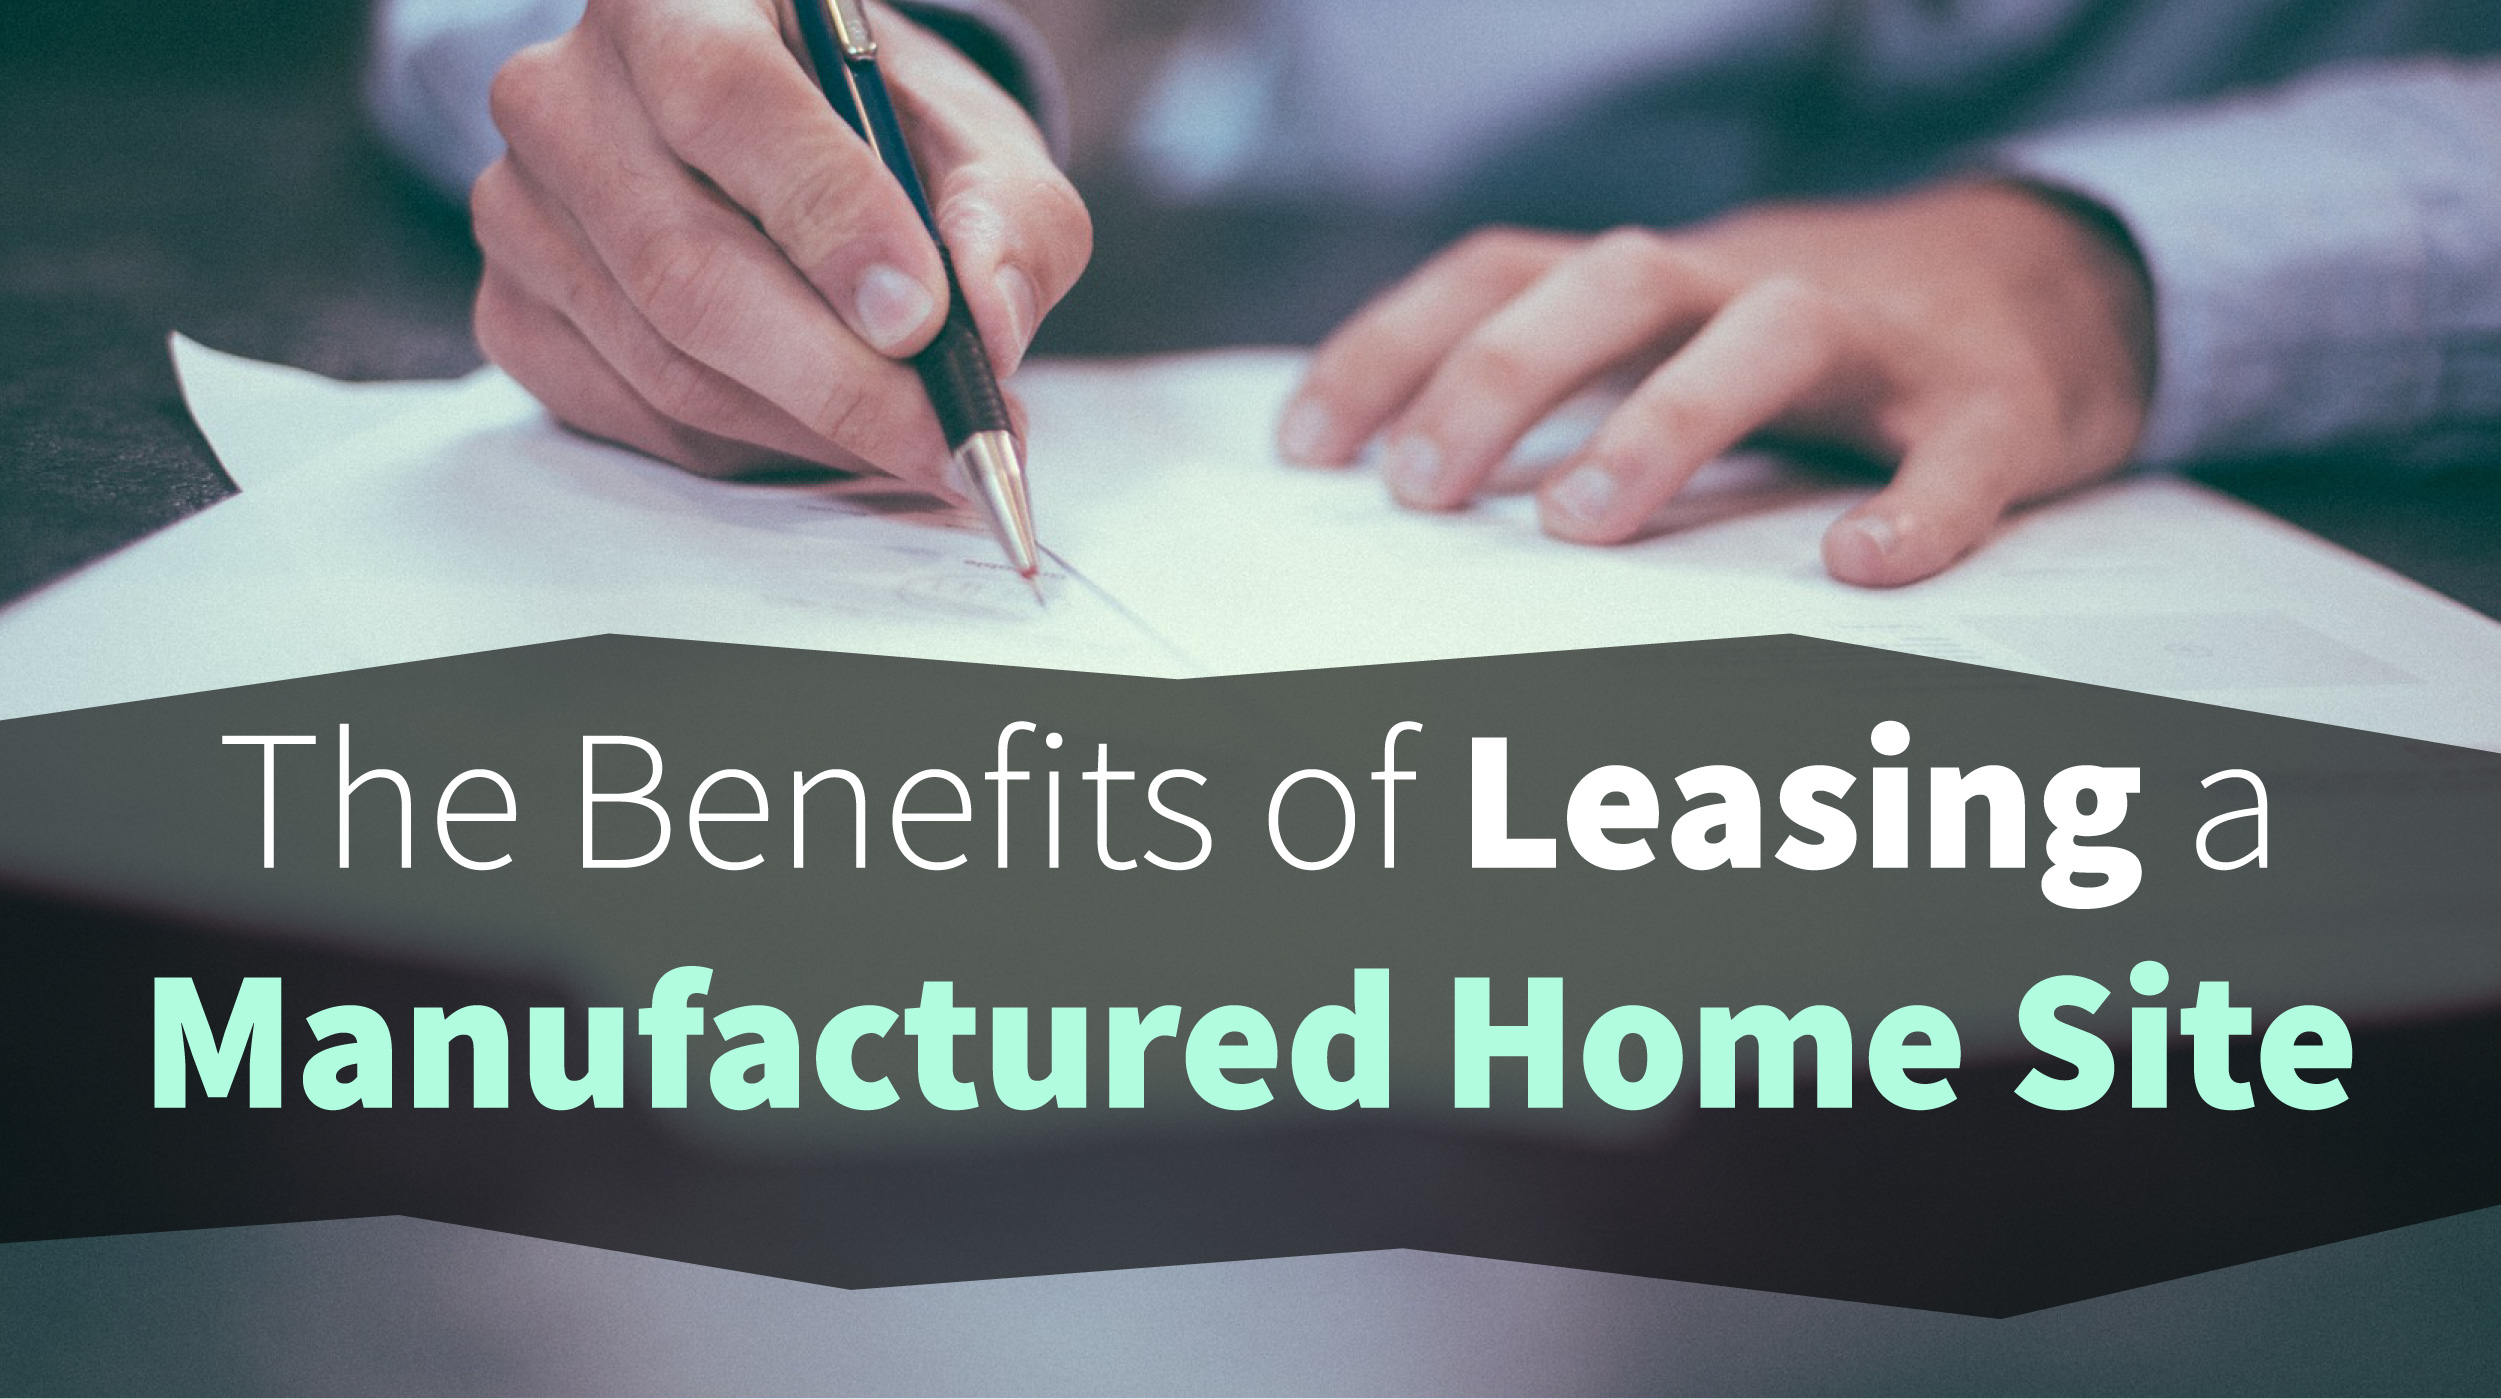 The Benefits of Leasing a Manufactured Home Site